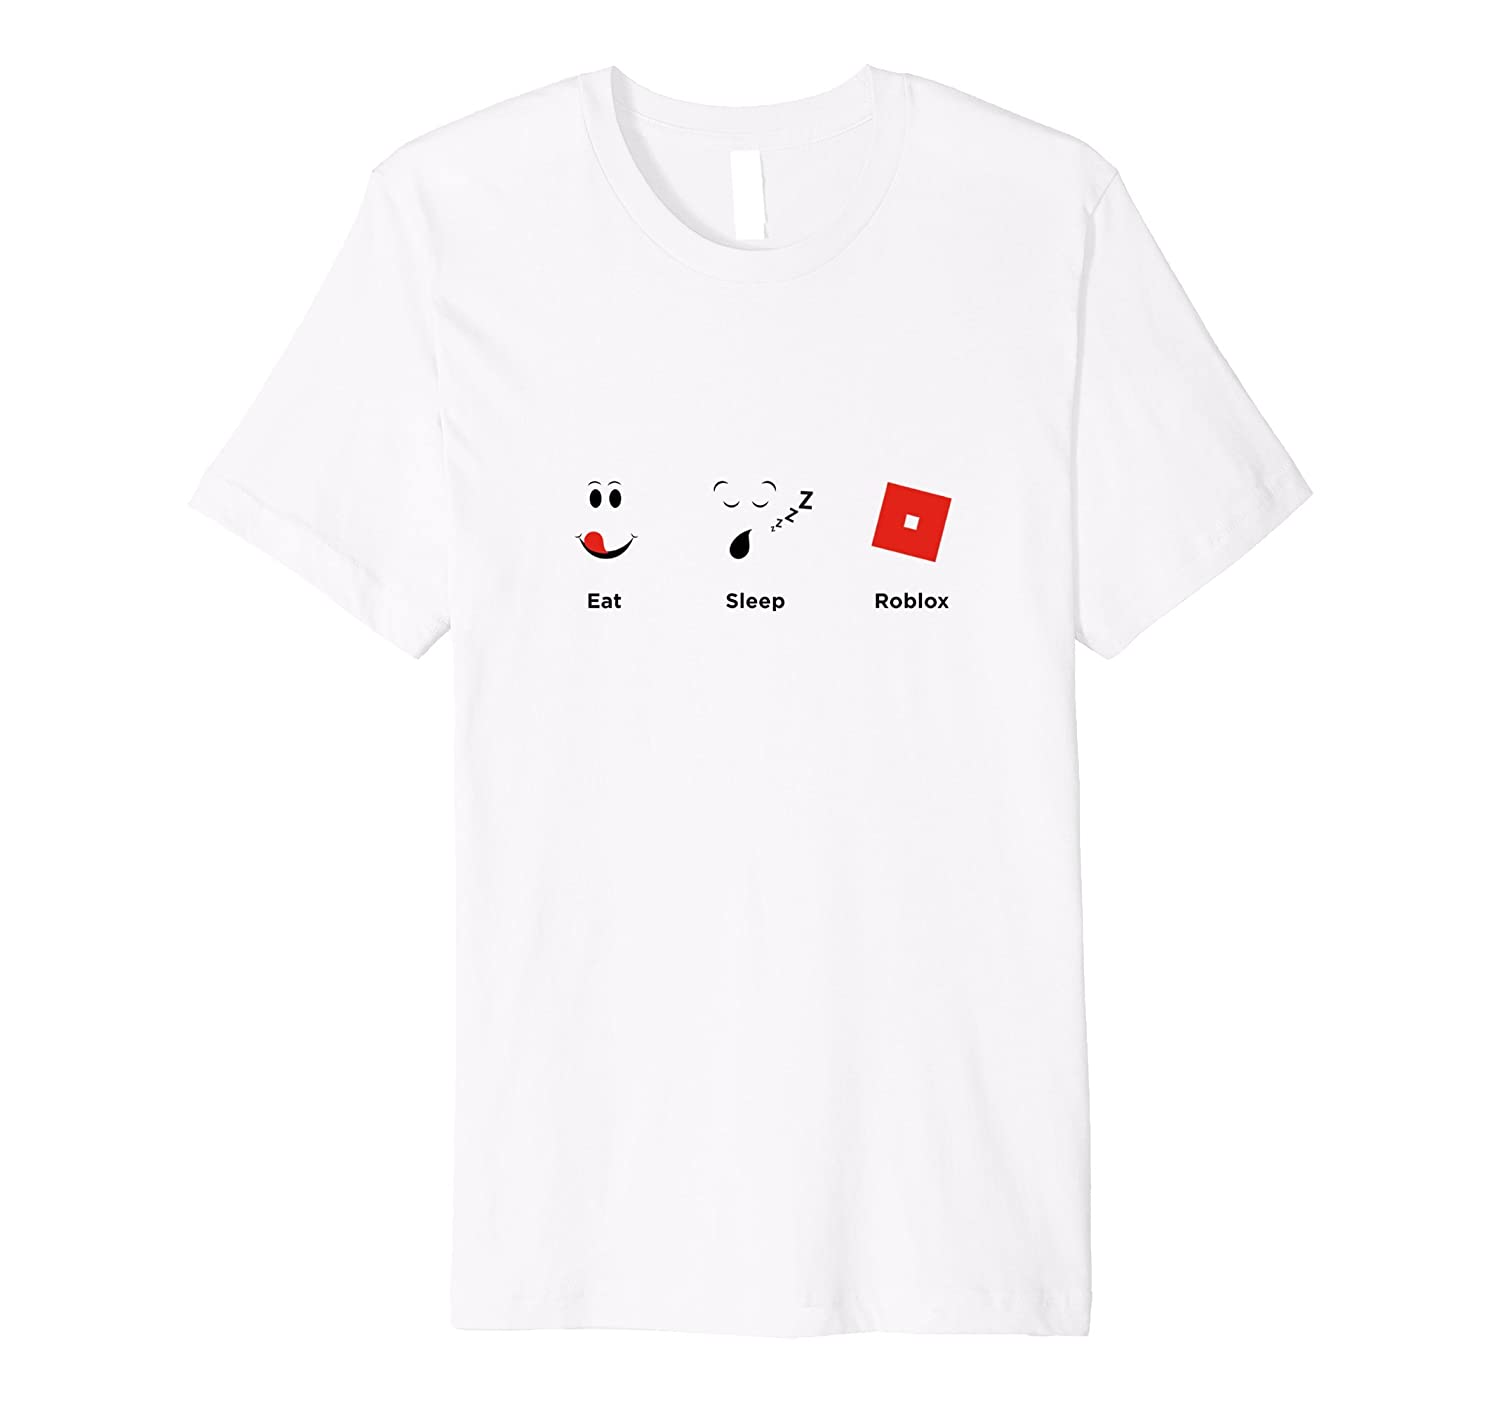 Black t shirt roblox - Roblox T Shirt Clothing